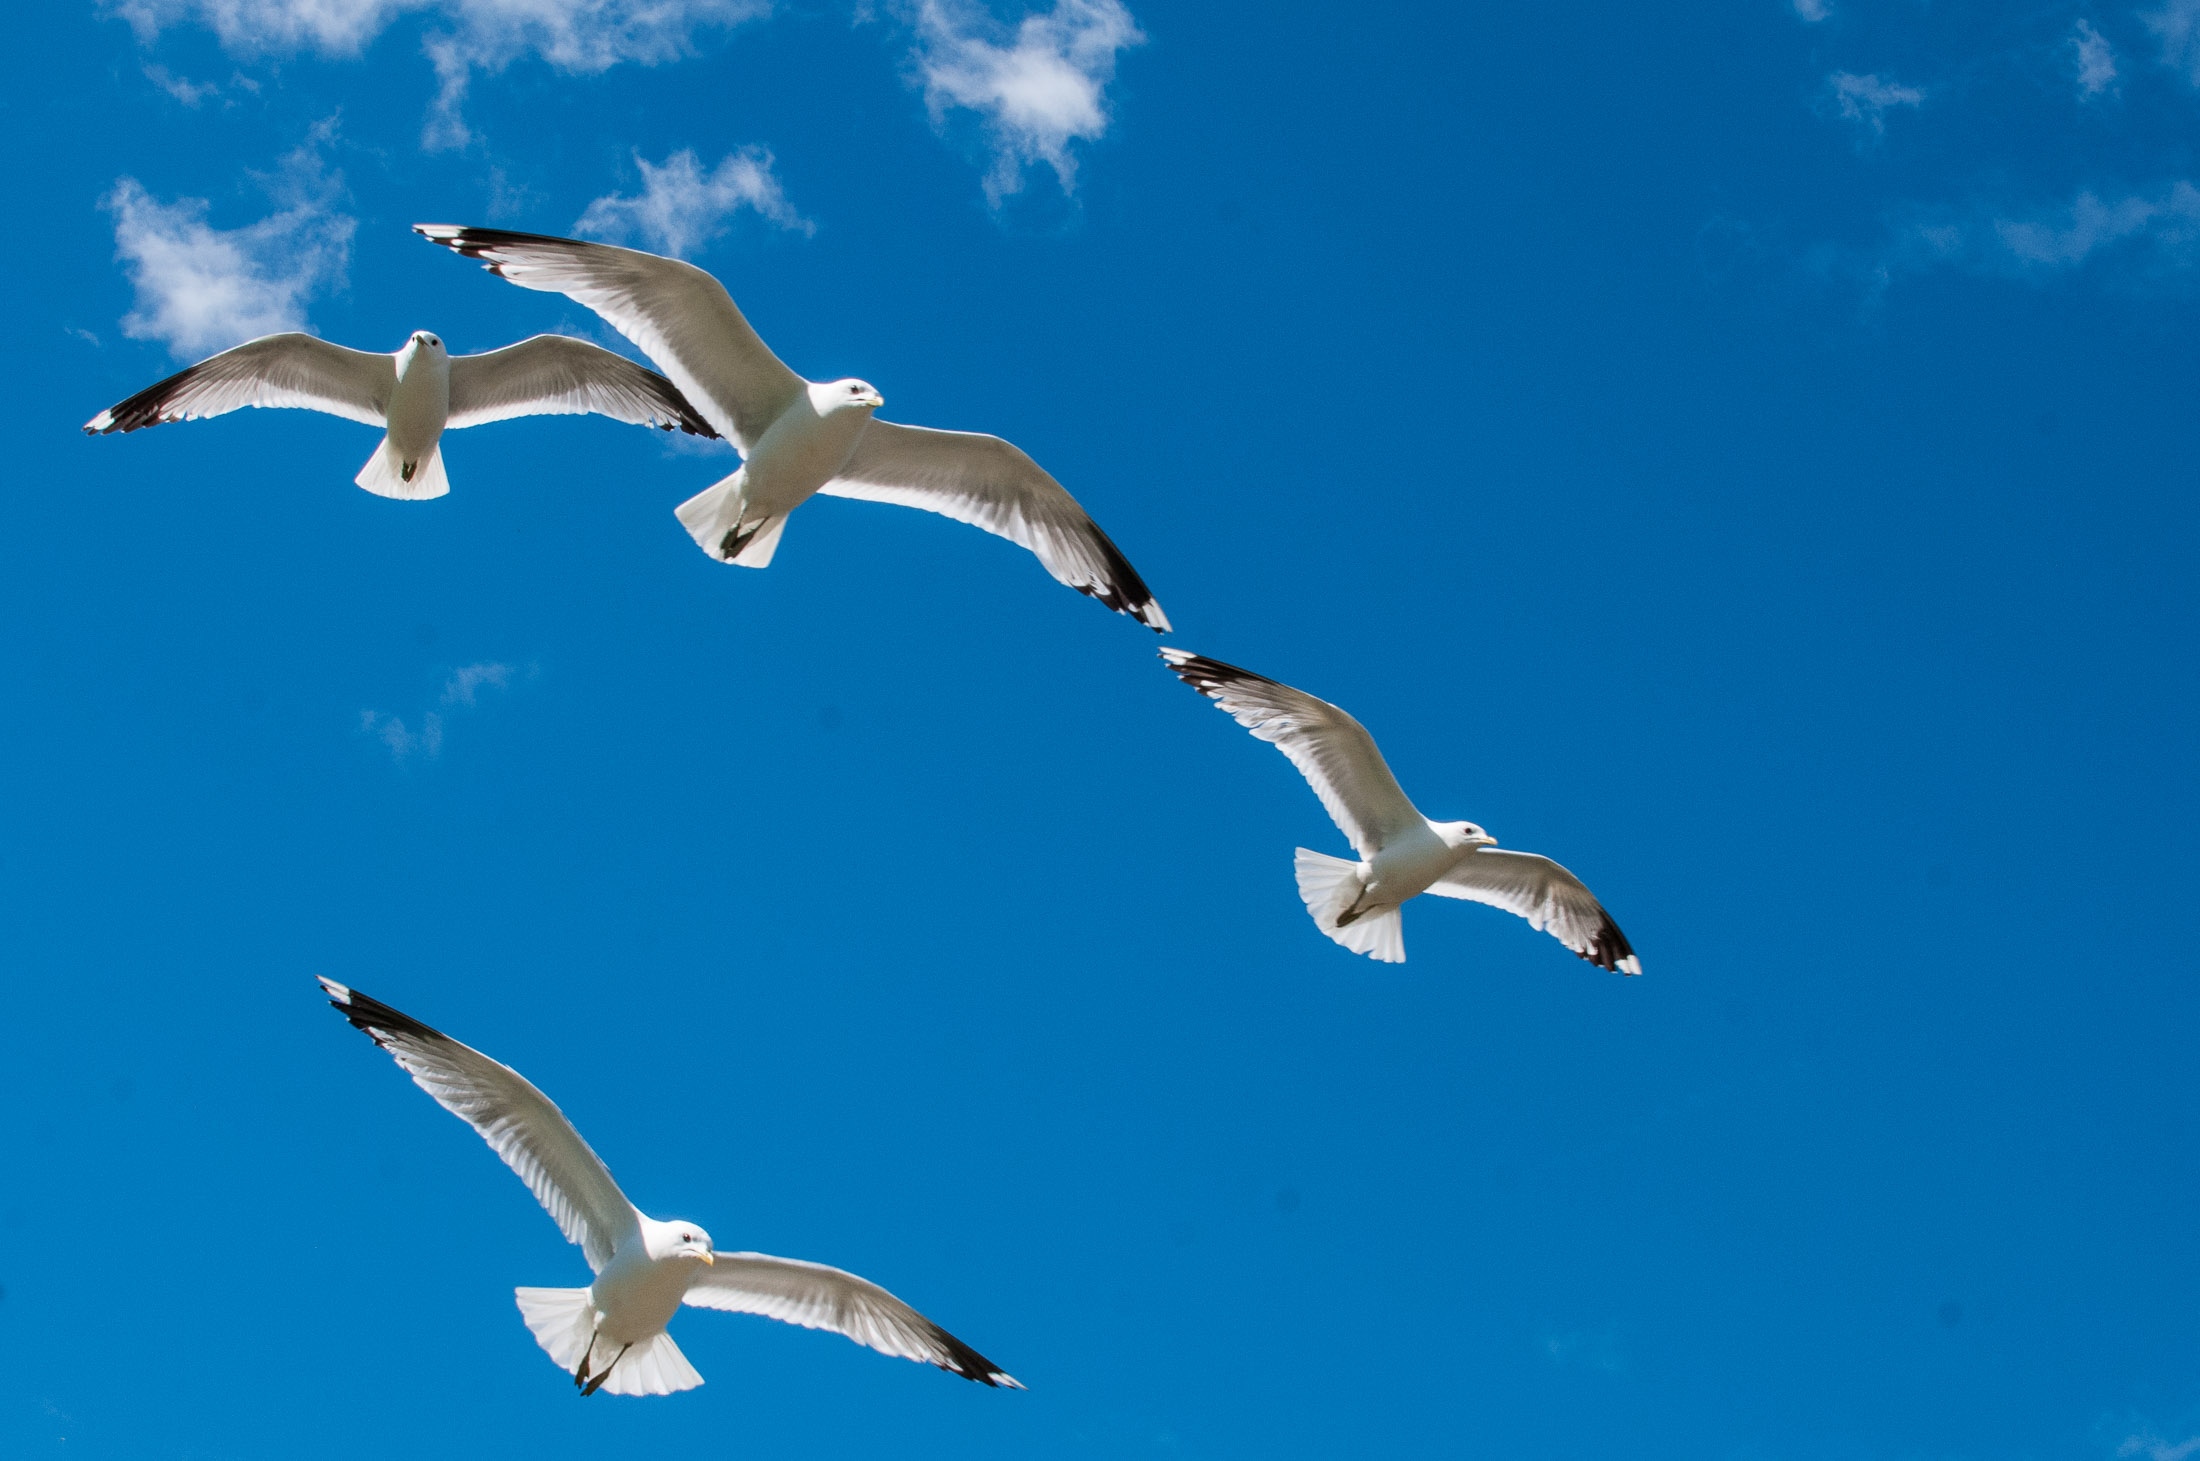 Seagulls fly against a blue sky in the hot Norwegian summer sun. Fredrikstad, Norway.